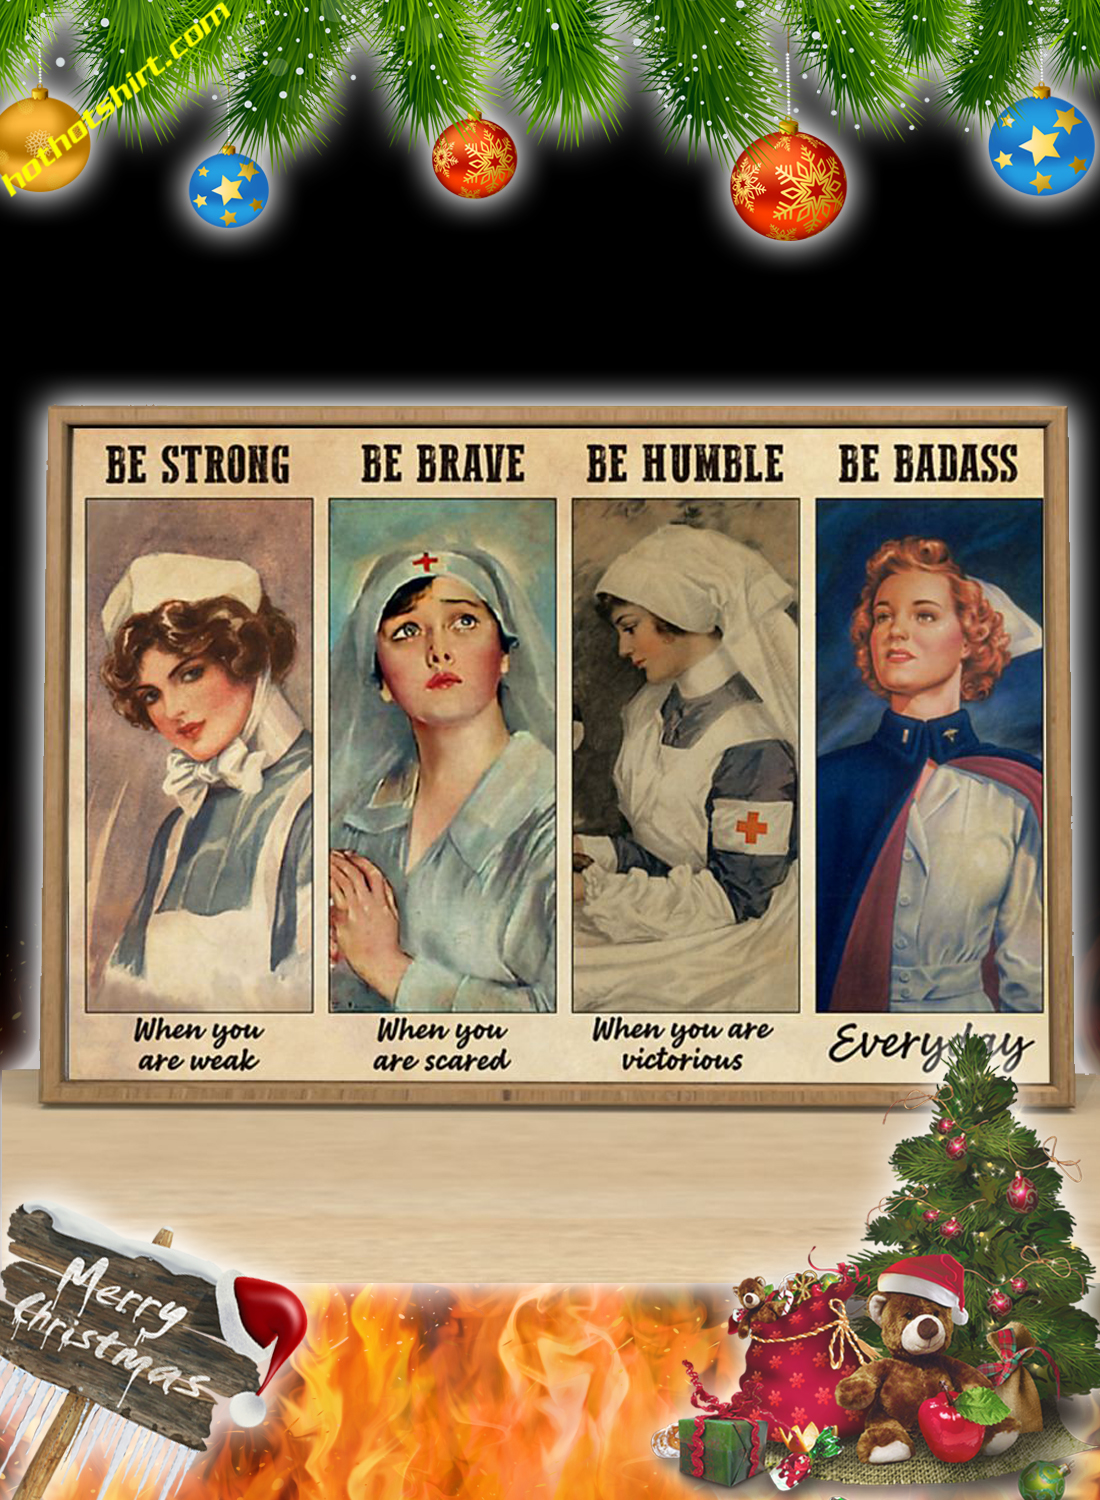 Nurses Be strong when you are weak poster 2